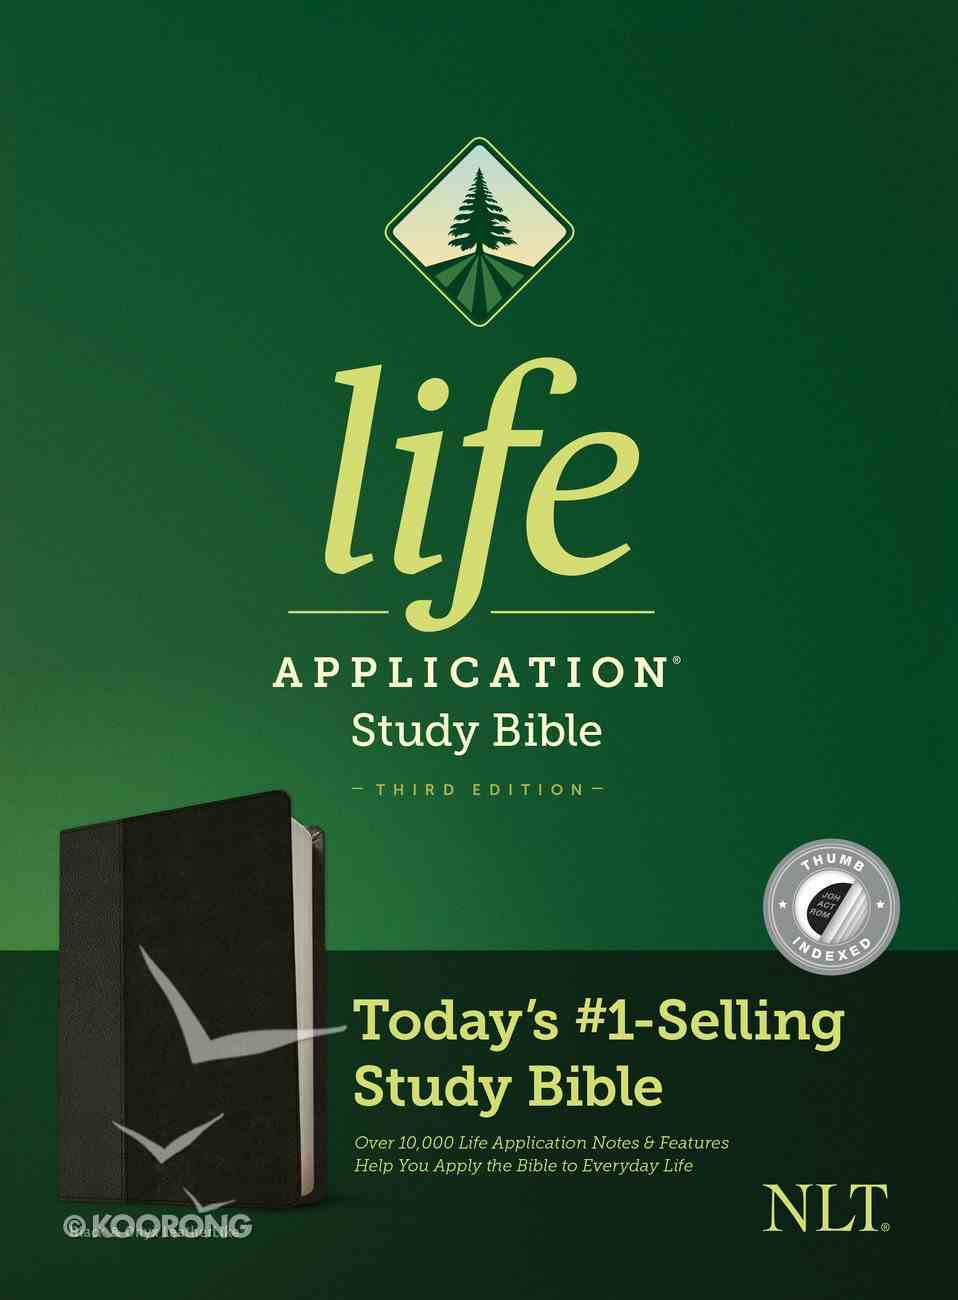 NLT Life Application Study Bible 3rd Edition Black/Onyx Indexed (Black Letter Edition) Imitation Leather